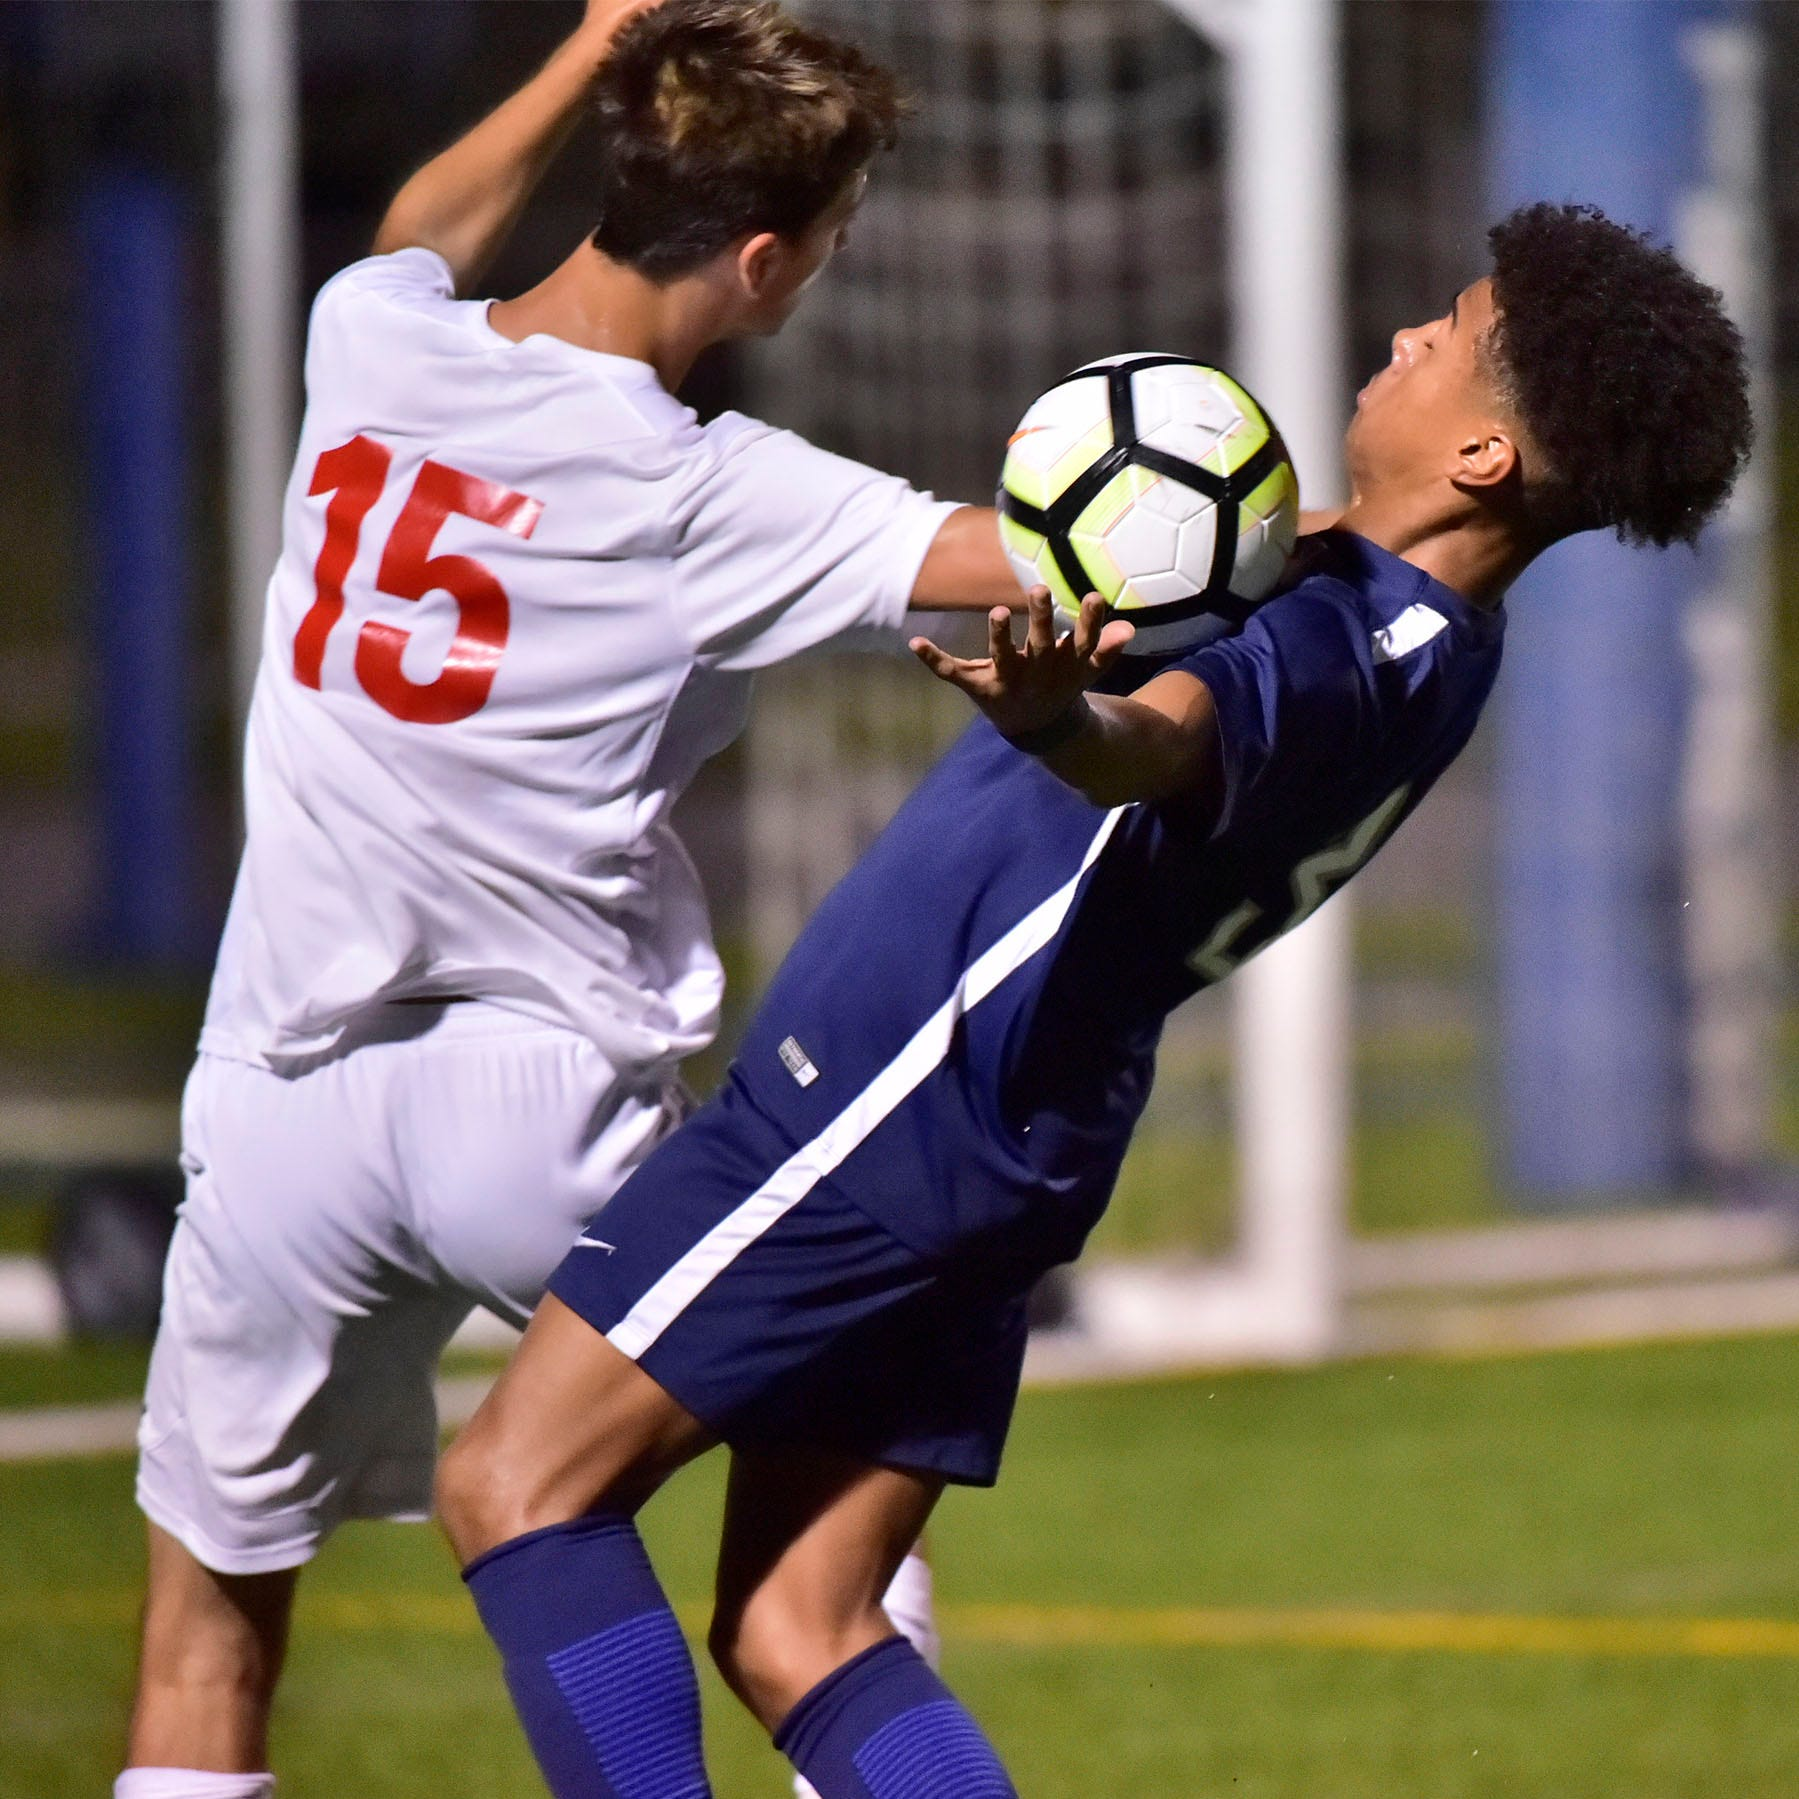 Chambersburg soccer faces grueling stretch ahead of Districts